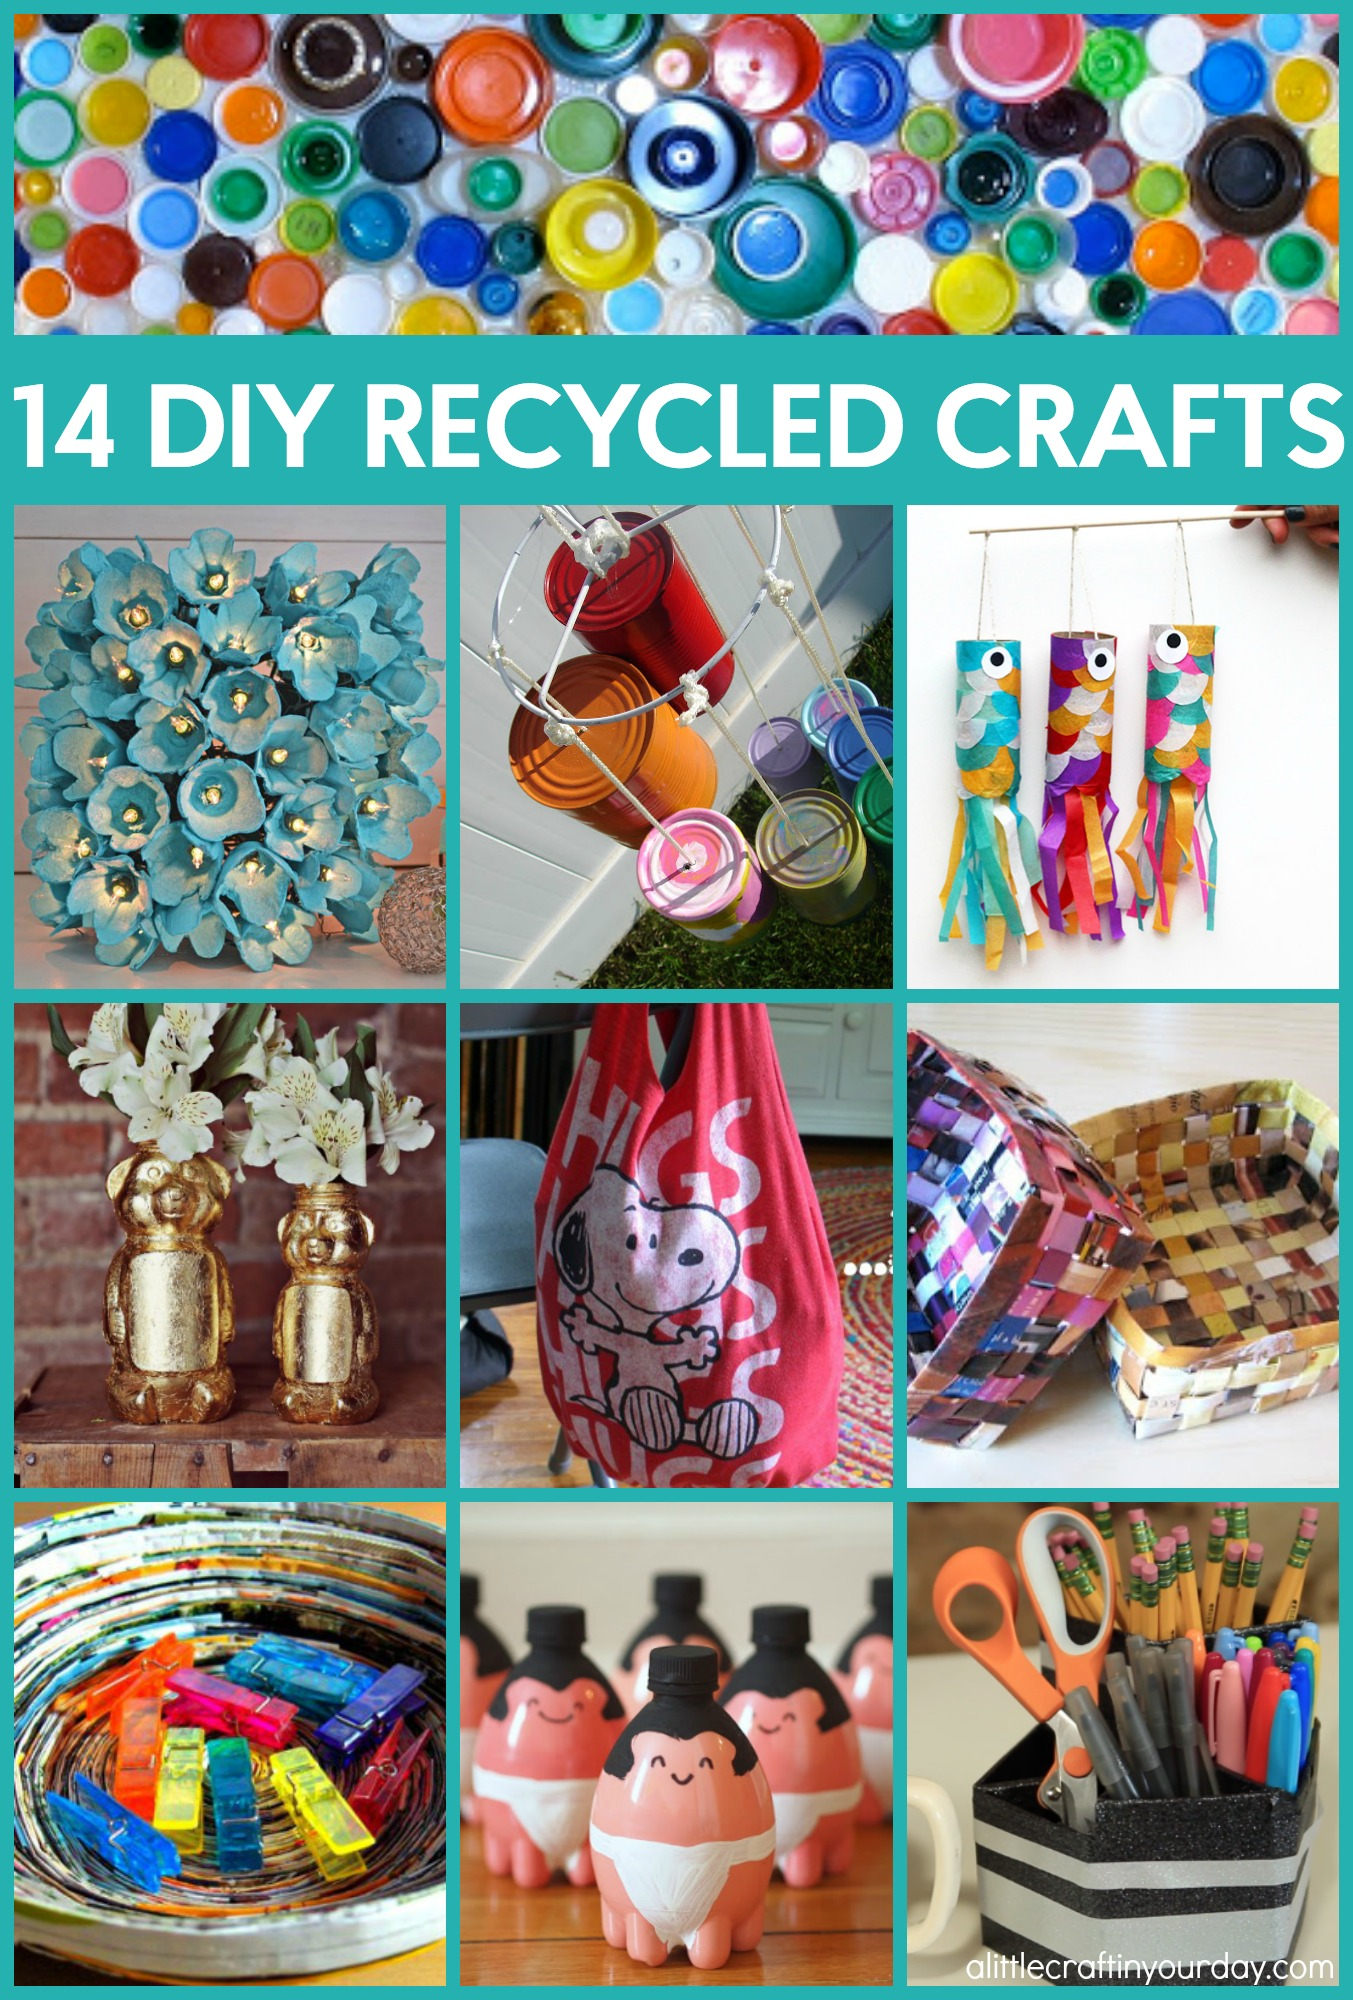 14 Diy Recycled Crafts That Will Help The Earth A Little